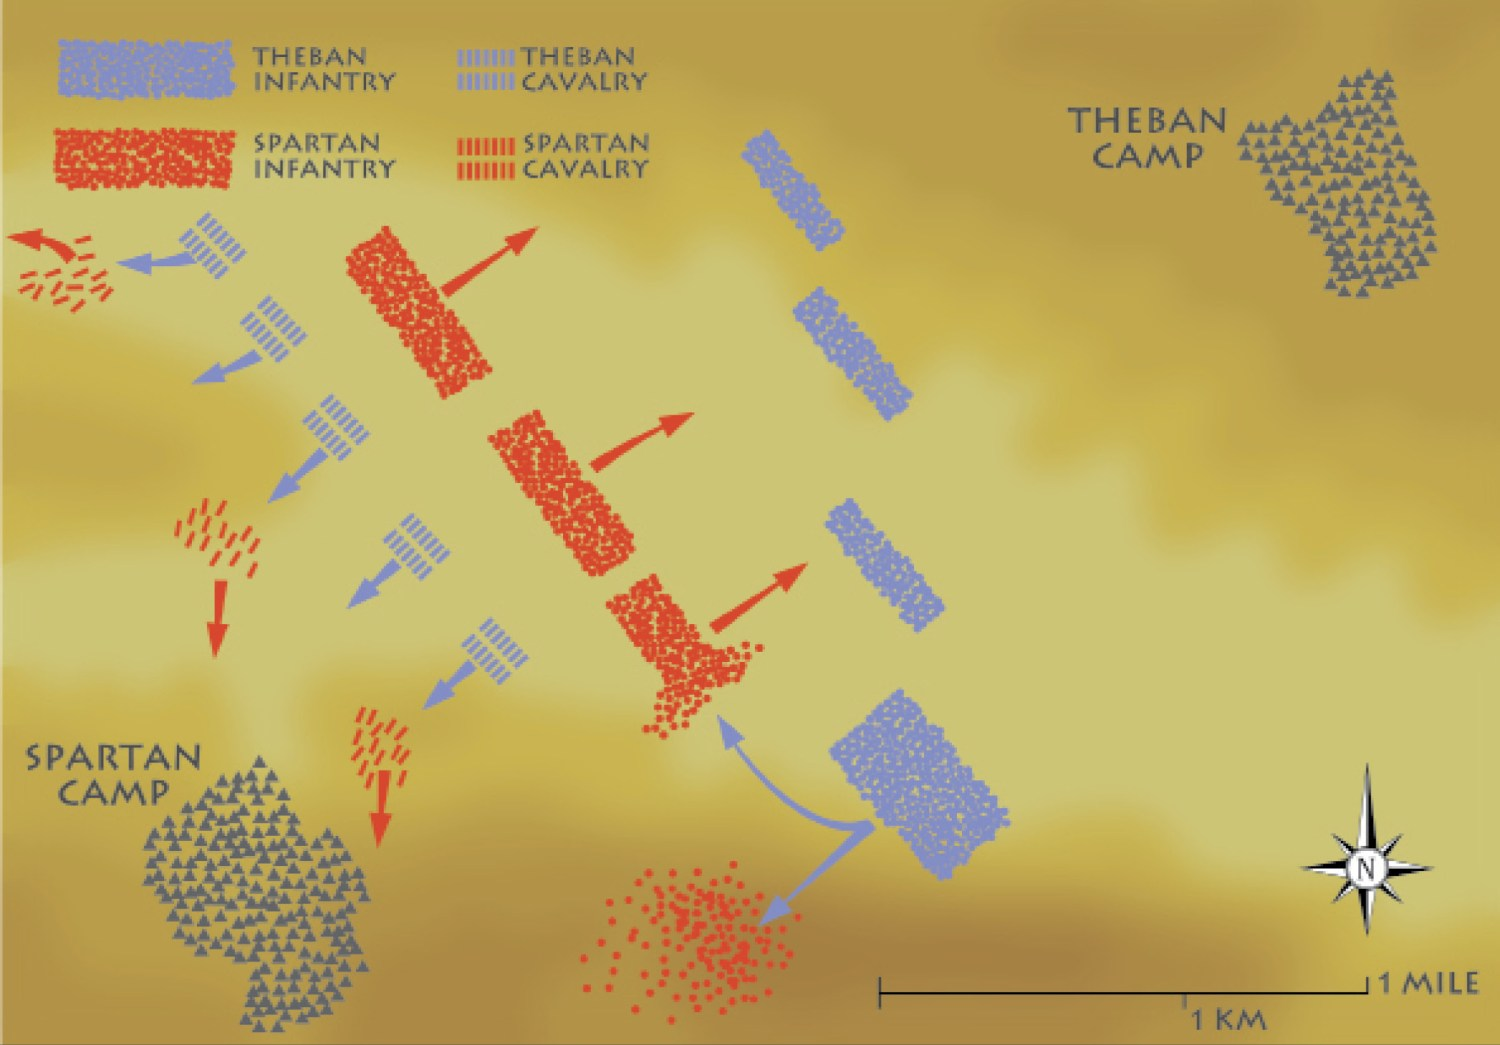 Below Plan showing the initial phase of the Battle of Leuktra. The Theban heavy phalanx opposing it, and elements of it, are now commencing an assault to roll up the rest of the enemy line.